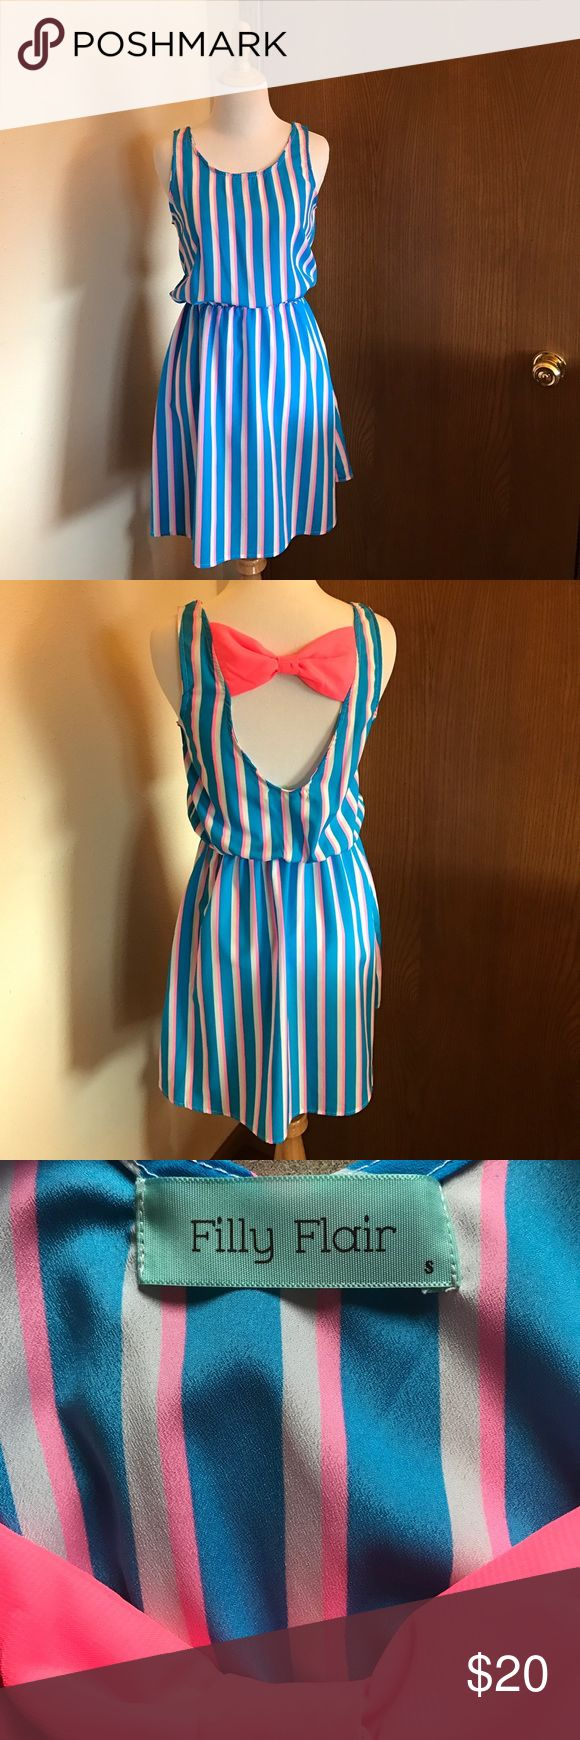 Filly Flair Blue and Pink Striped Dress Size Small Adorable striped dress with bow detail in the back! In good used condition. Filly Flair Dresses Mini